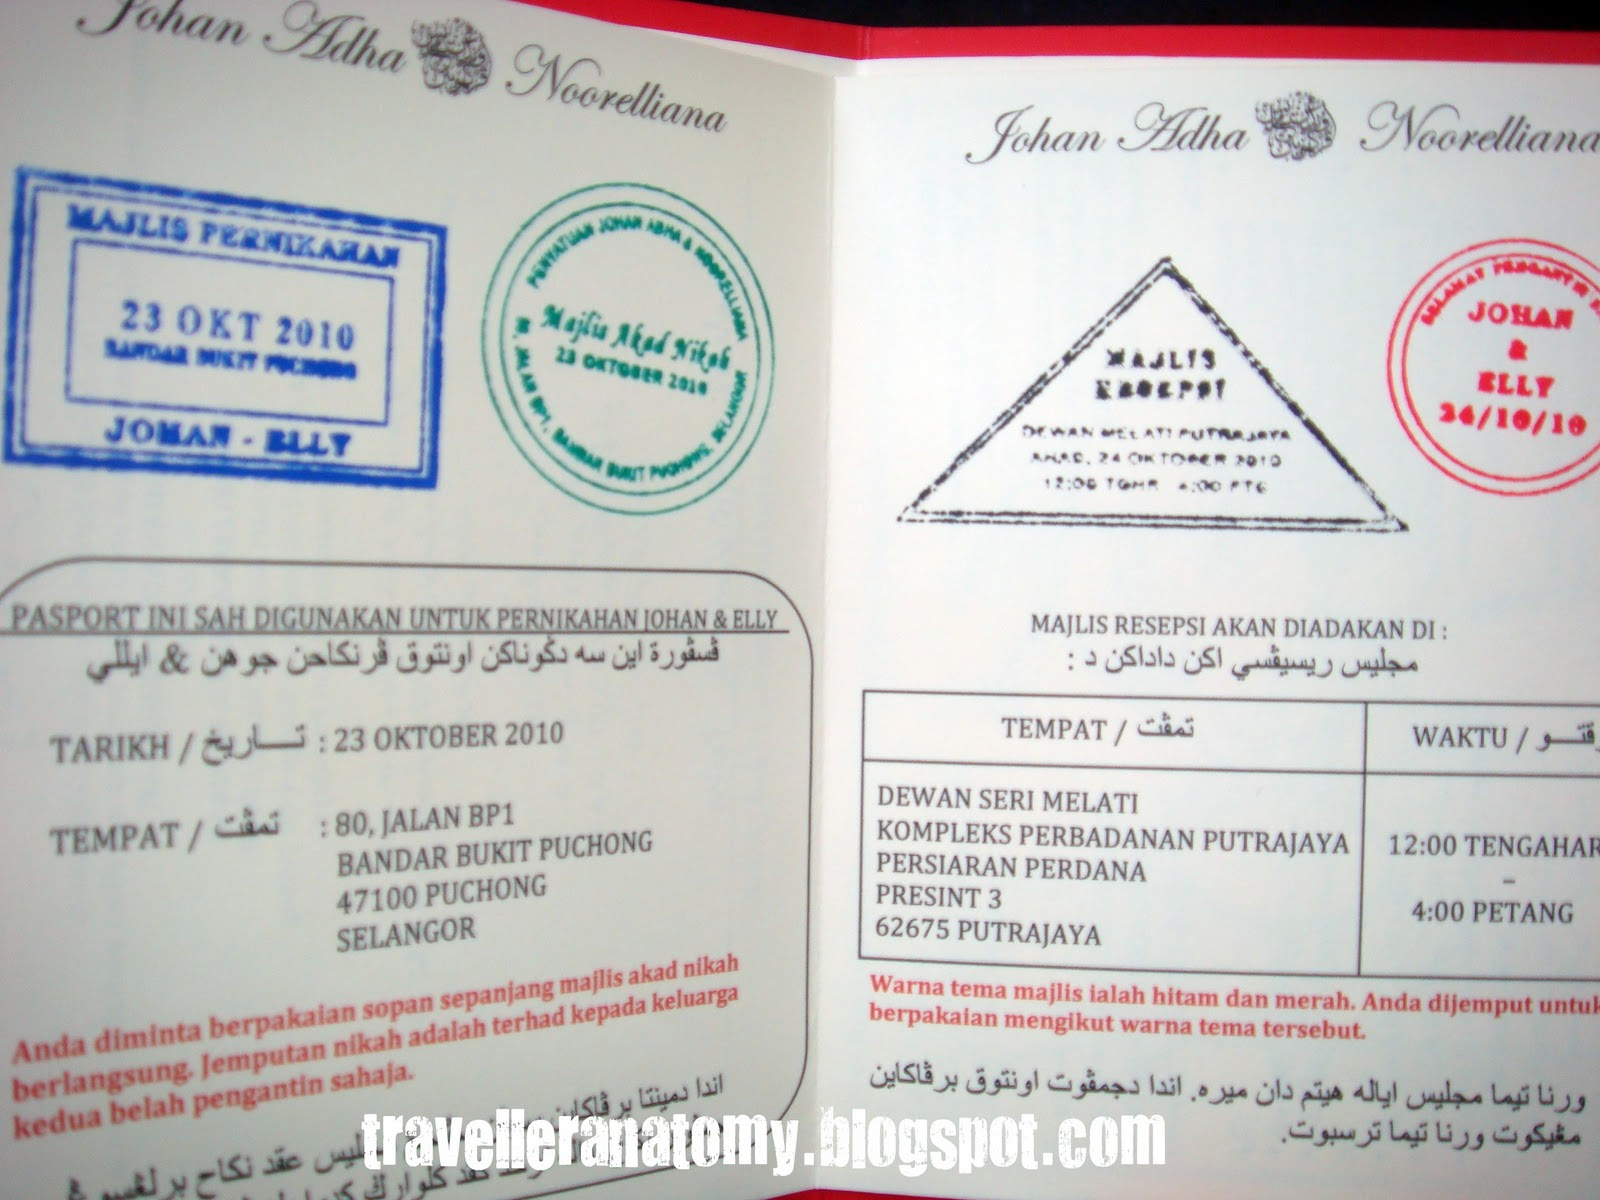 Passport Pages Template The passport pages